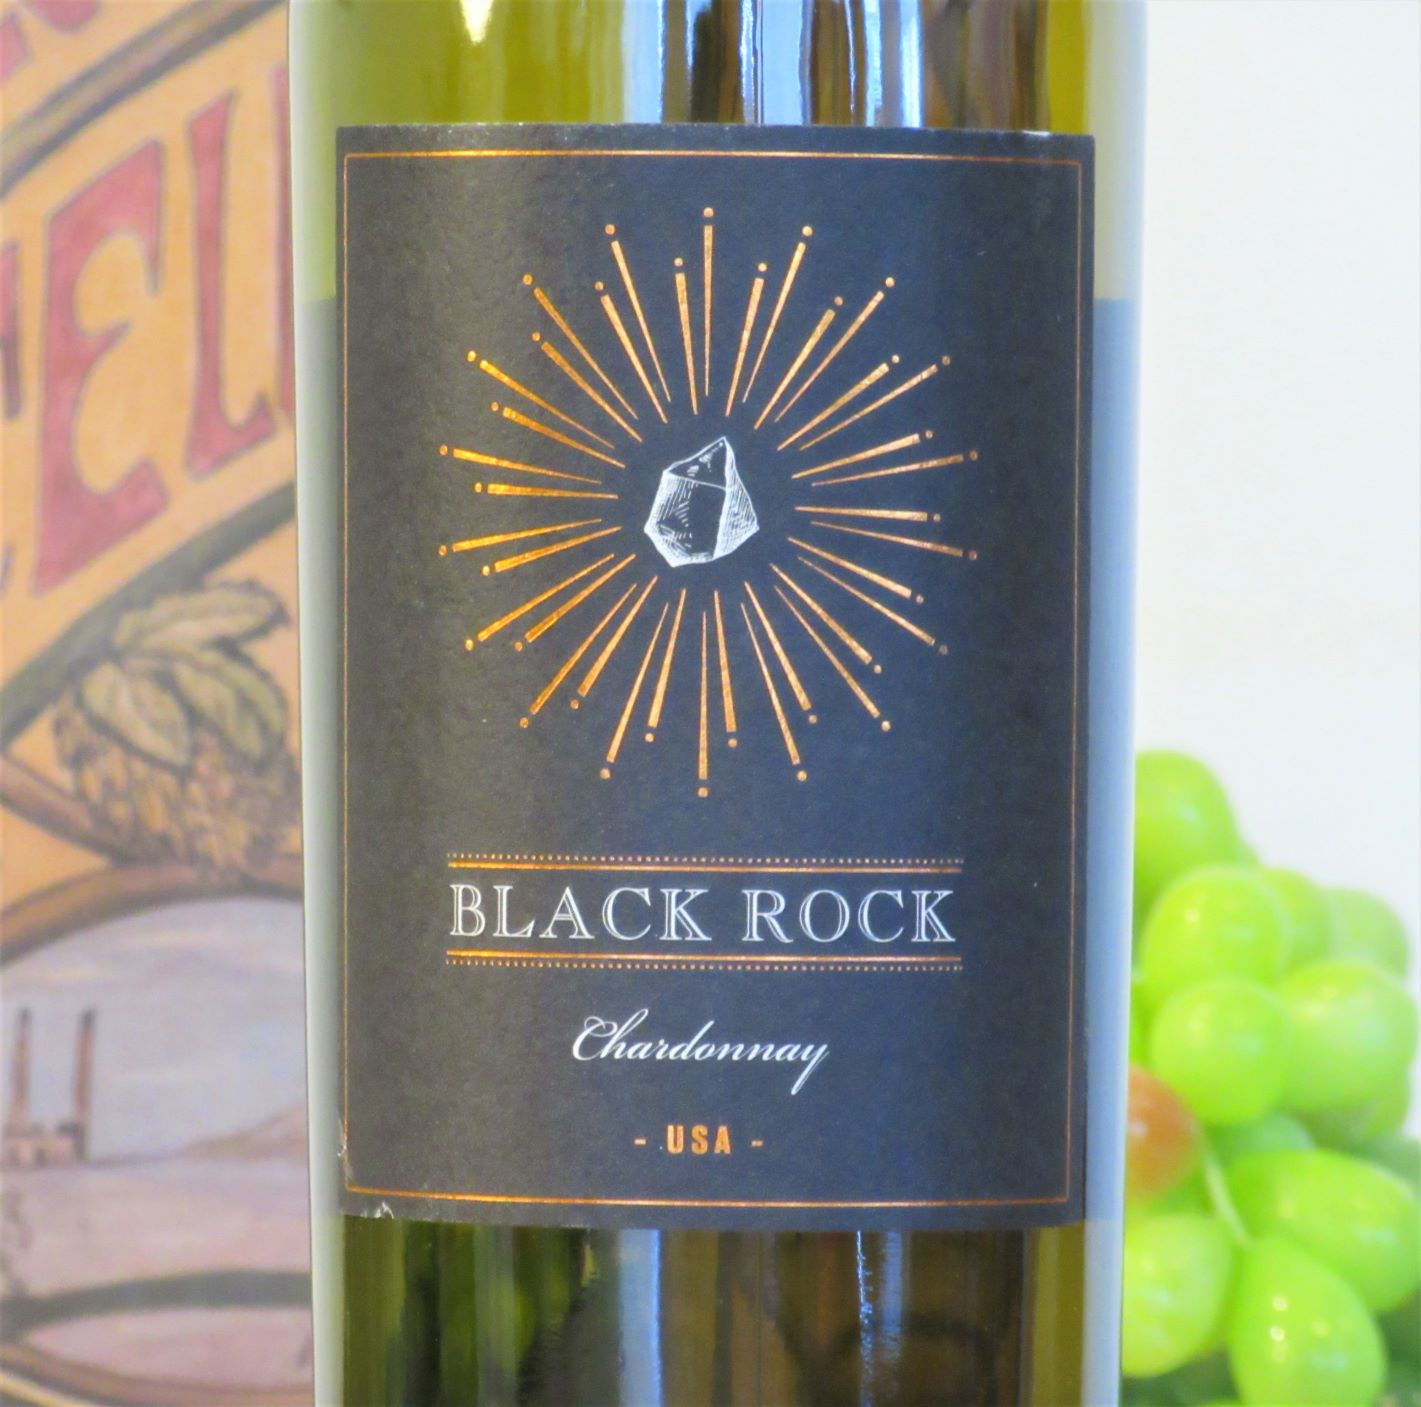 Black Rock Chardonnay